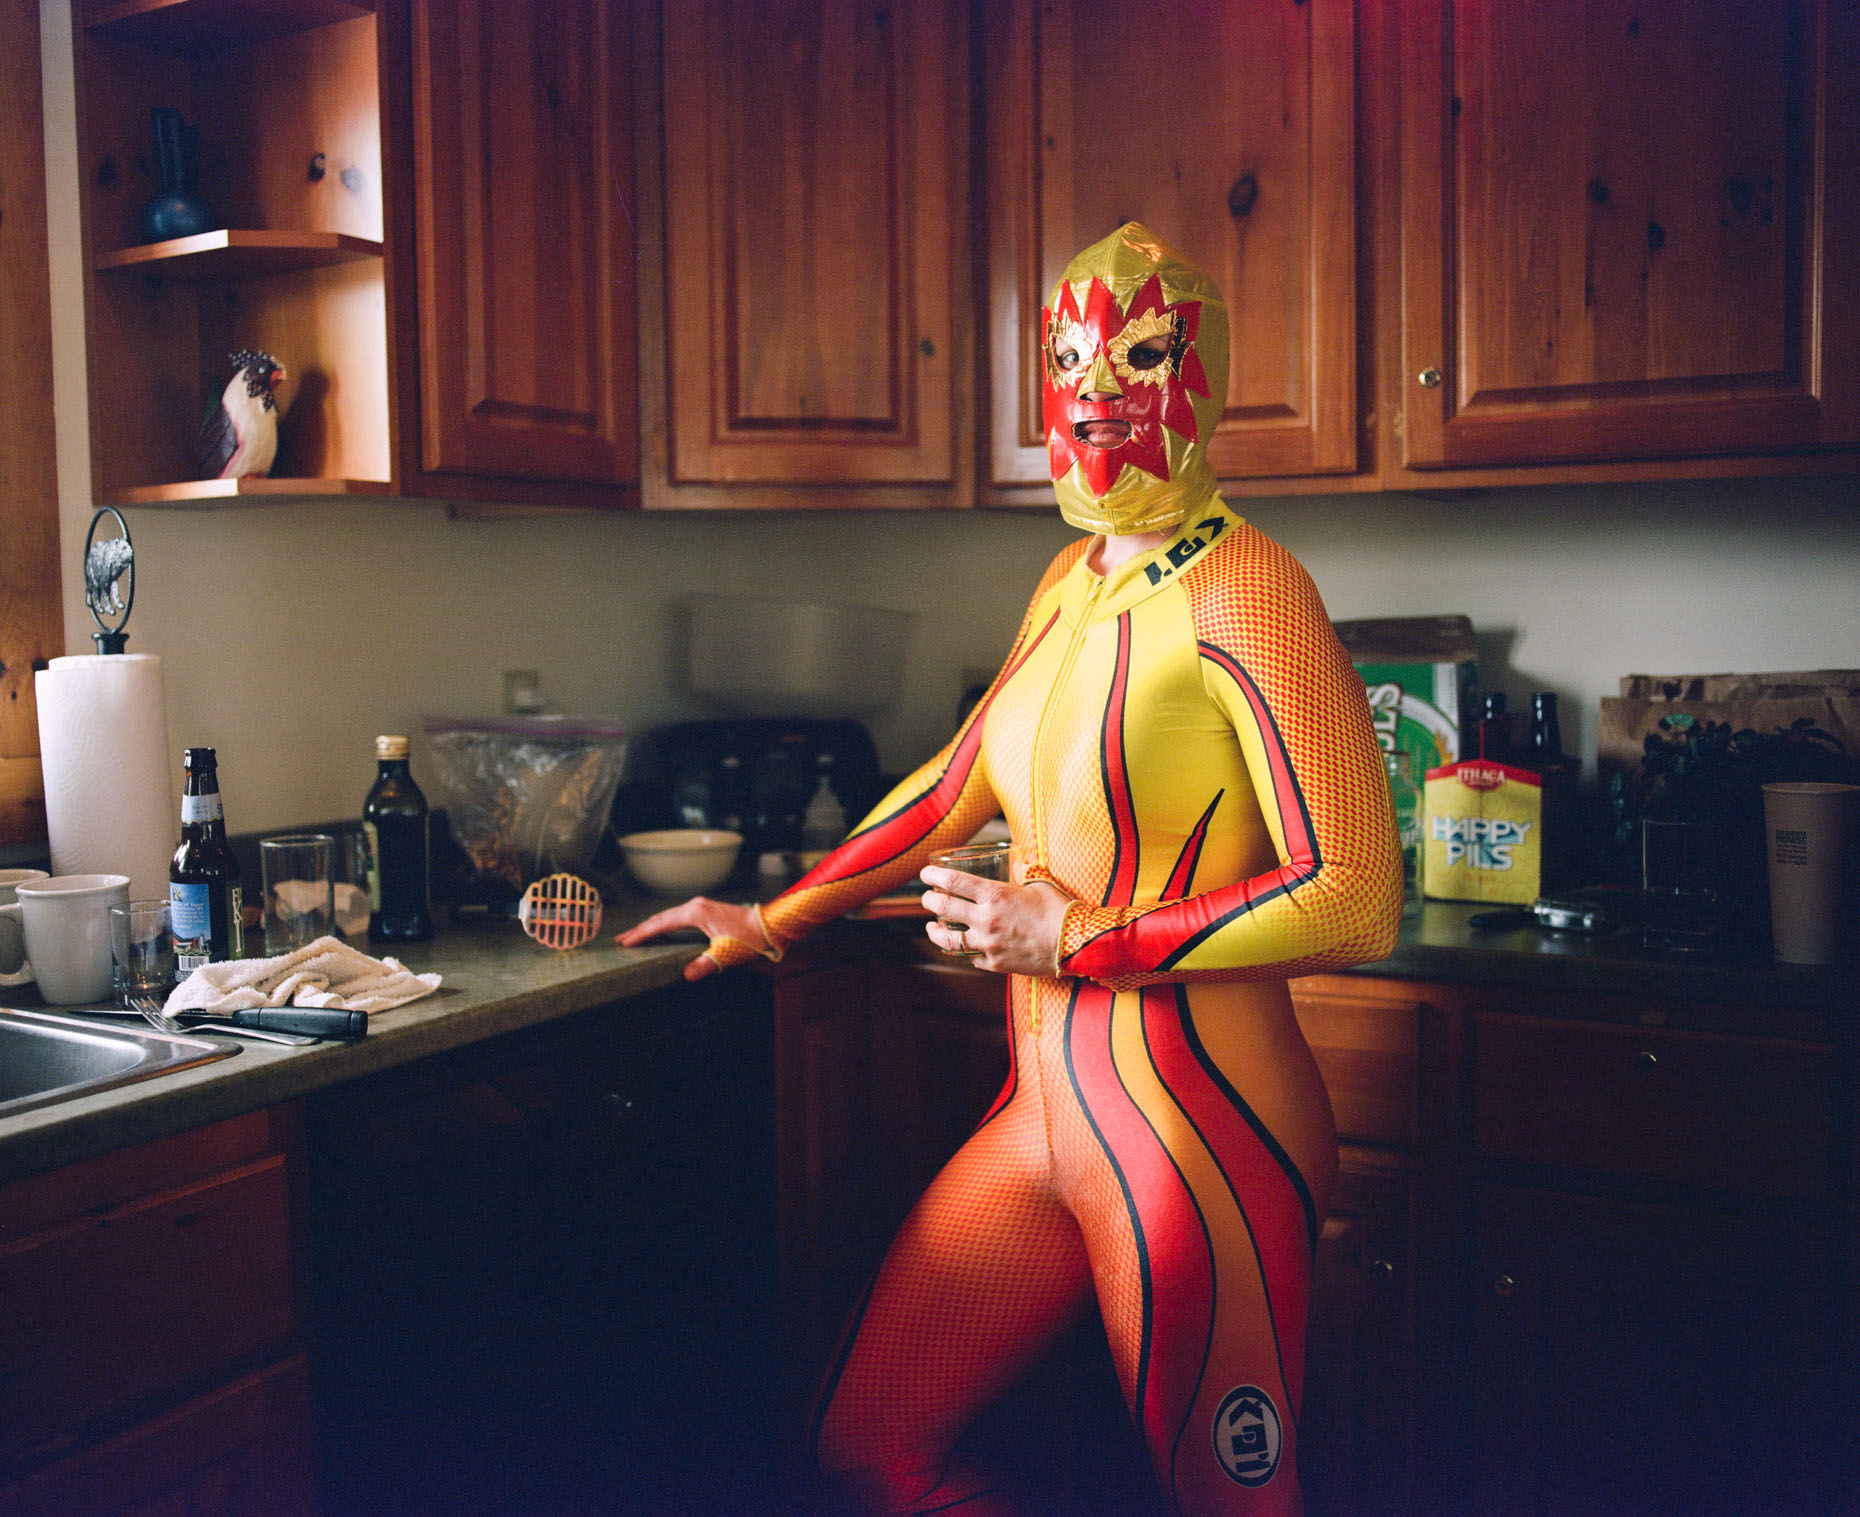 Val Von Zuben poses for me in her Lucha Libre mask in the kitchen of a ski-rental in April 2017